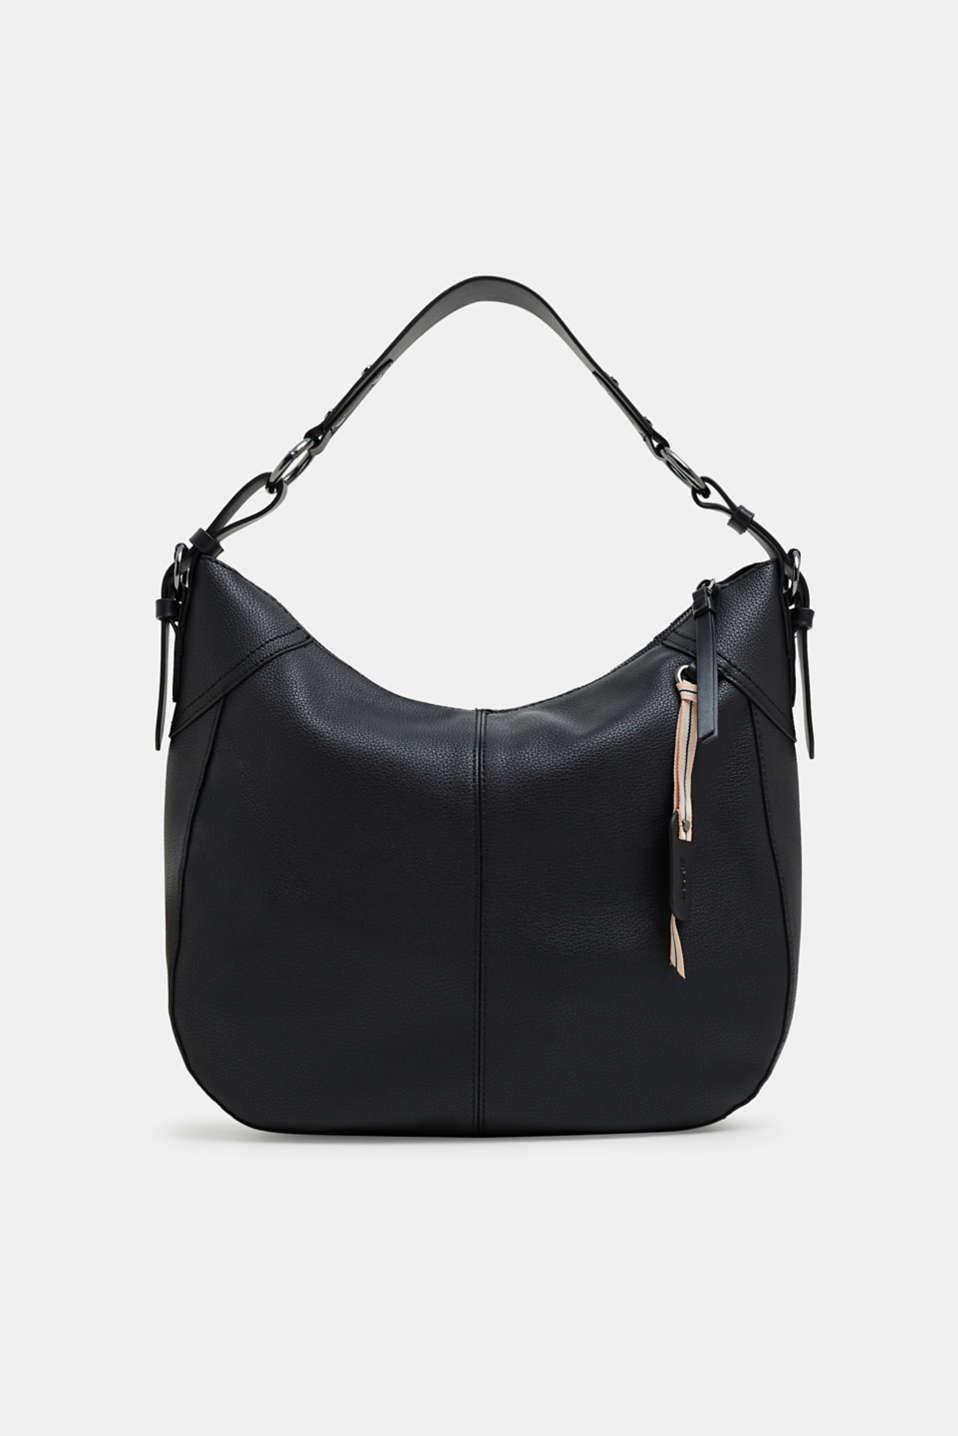 9da0a59bc988 Esprit - Faux leather hobo bag at our Online Shop